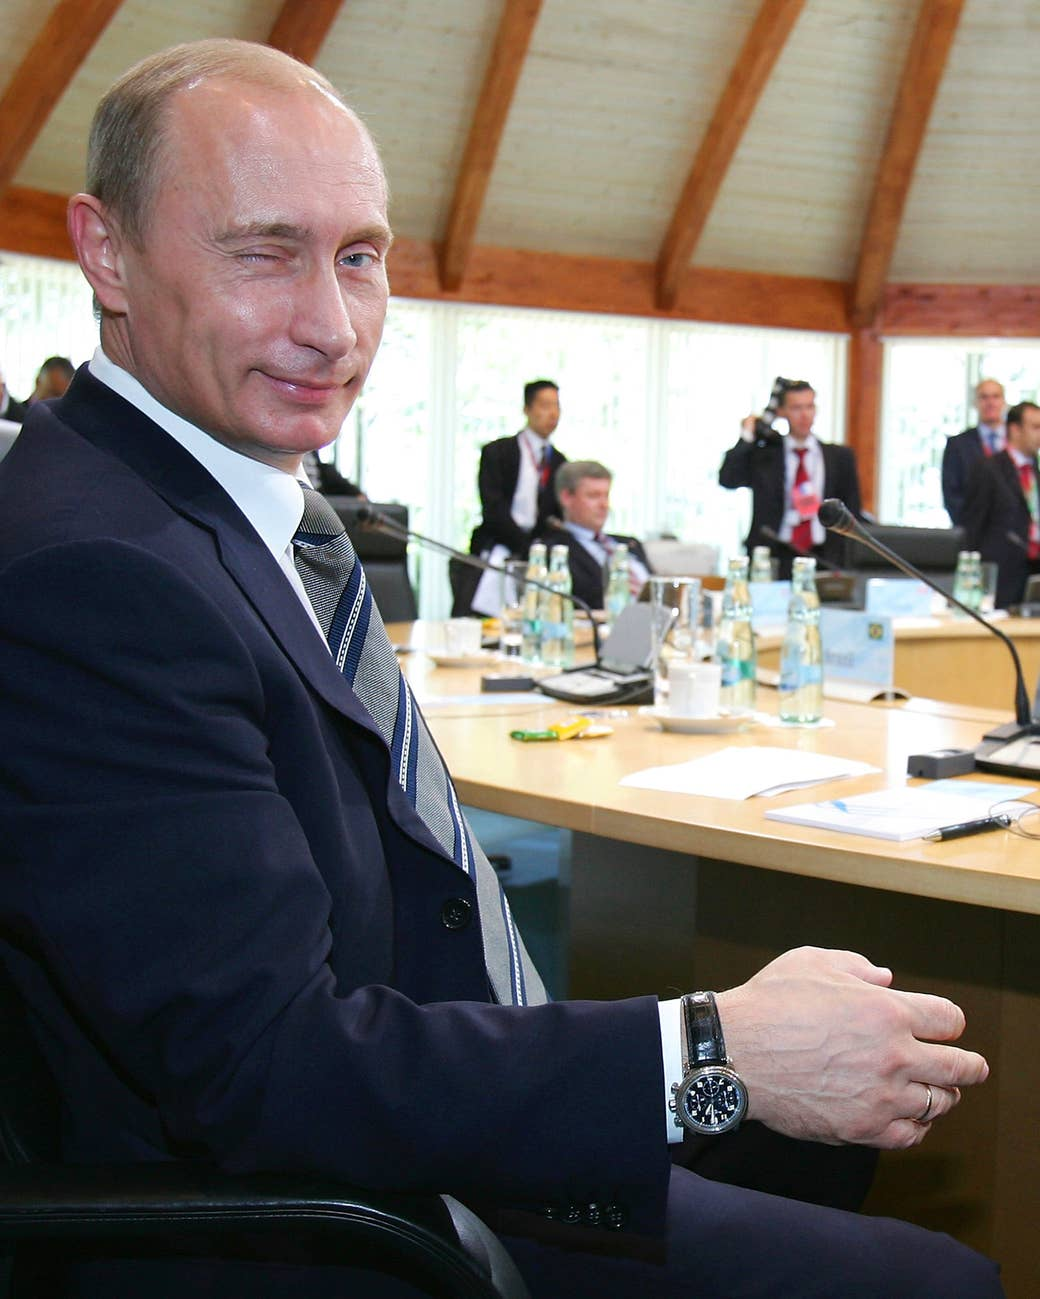 Putin winks to the camera prior to a working session with leaders of the G8 countries and five developing nations on June 8, 2007, in Heiligendamm, Germany.